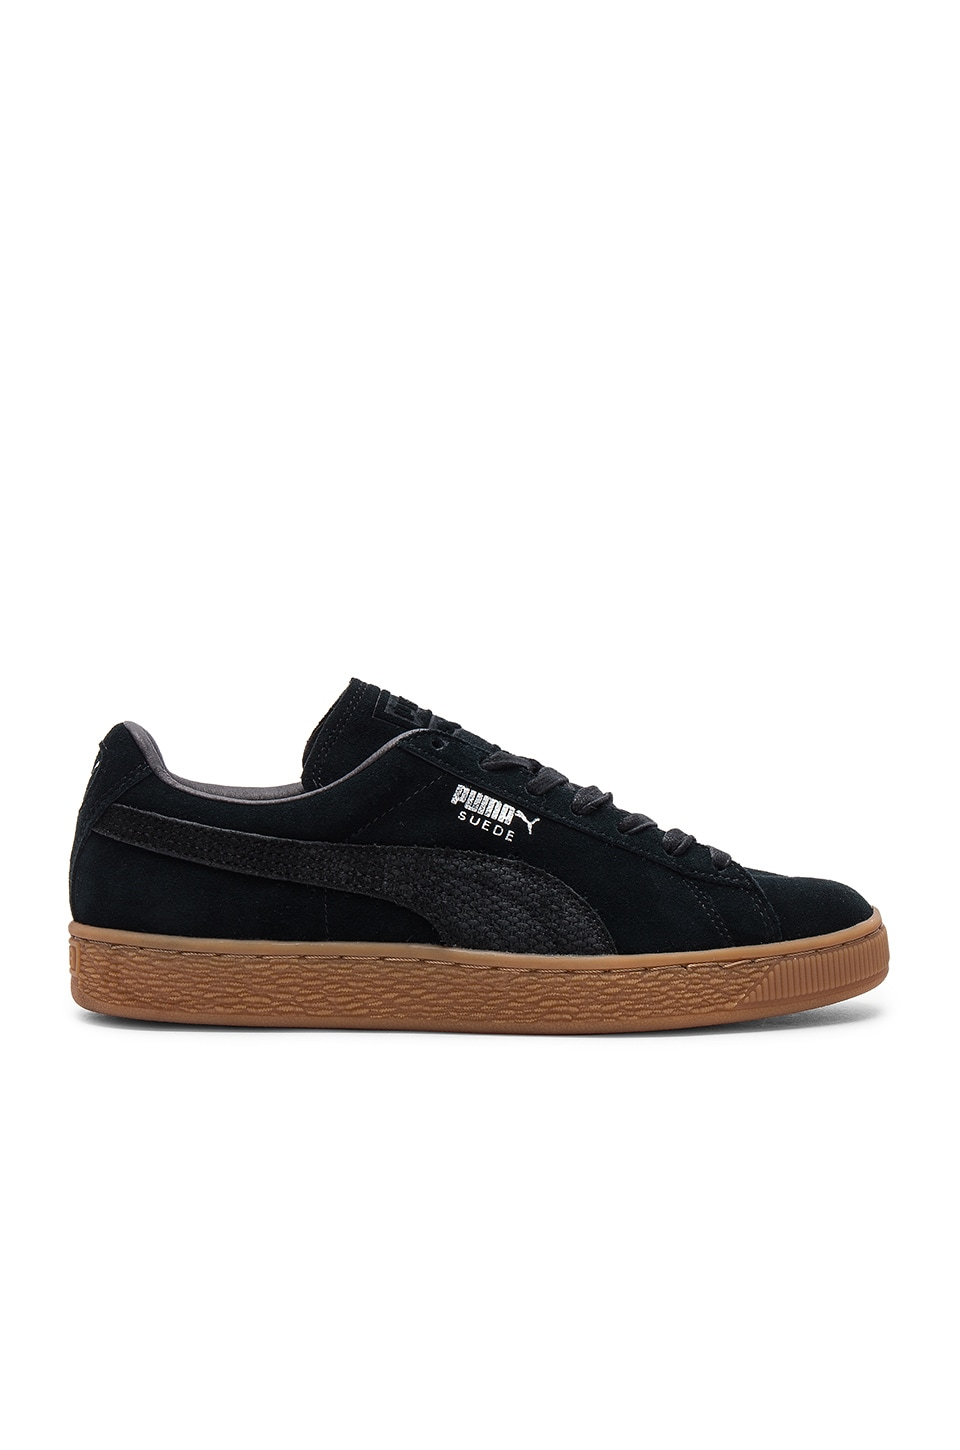 BlackRevolve Puma In Classic Suede Select Citi O8nwN0yPvm